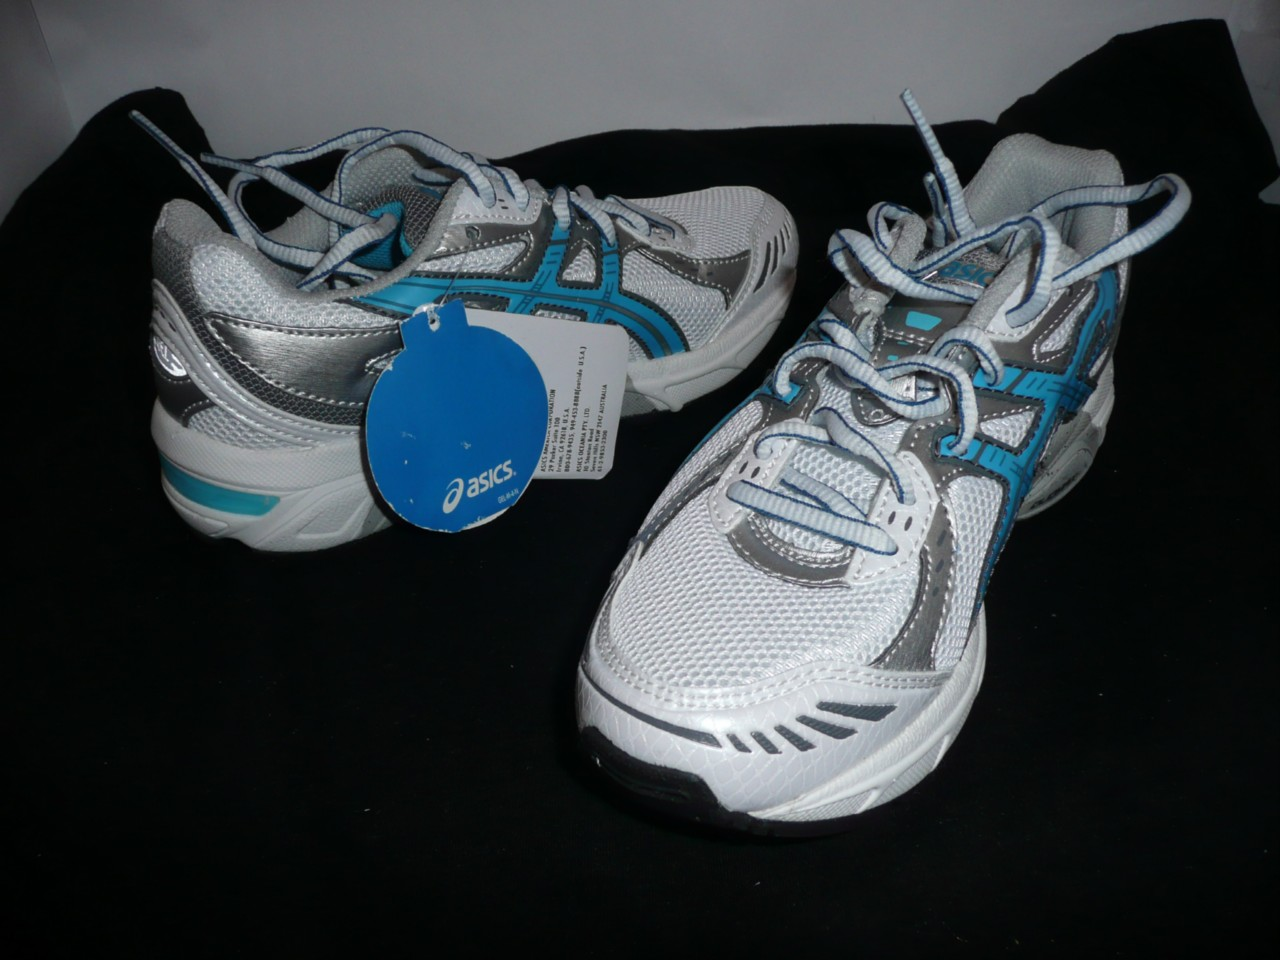 LADIES-ASICS-GEL-1150-RUNNERS-WHITE-SILVER-BLUE-BNWT